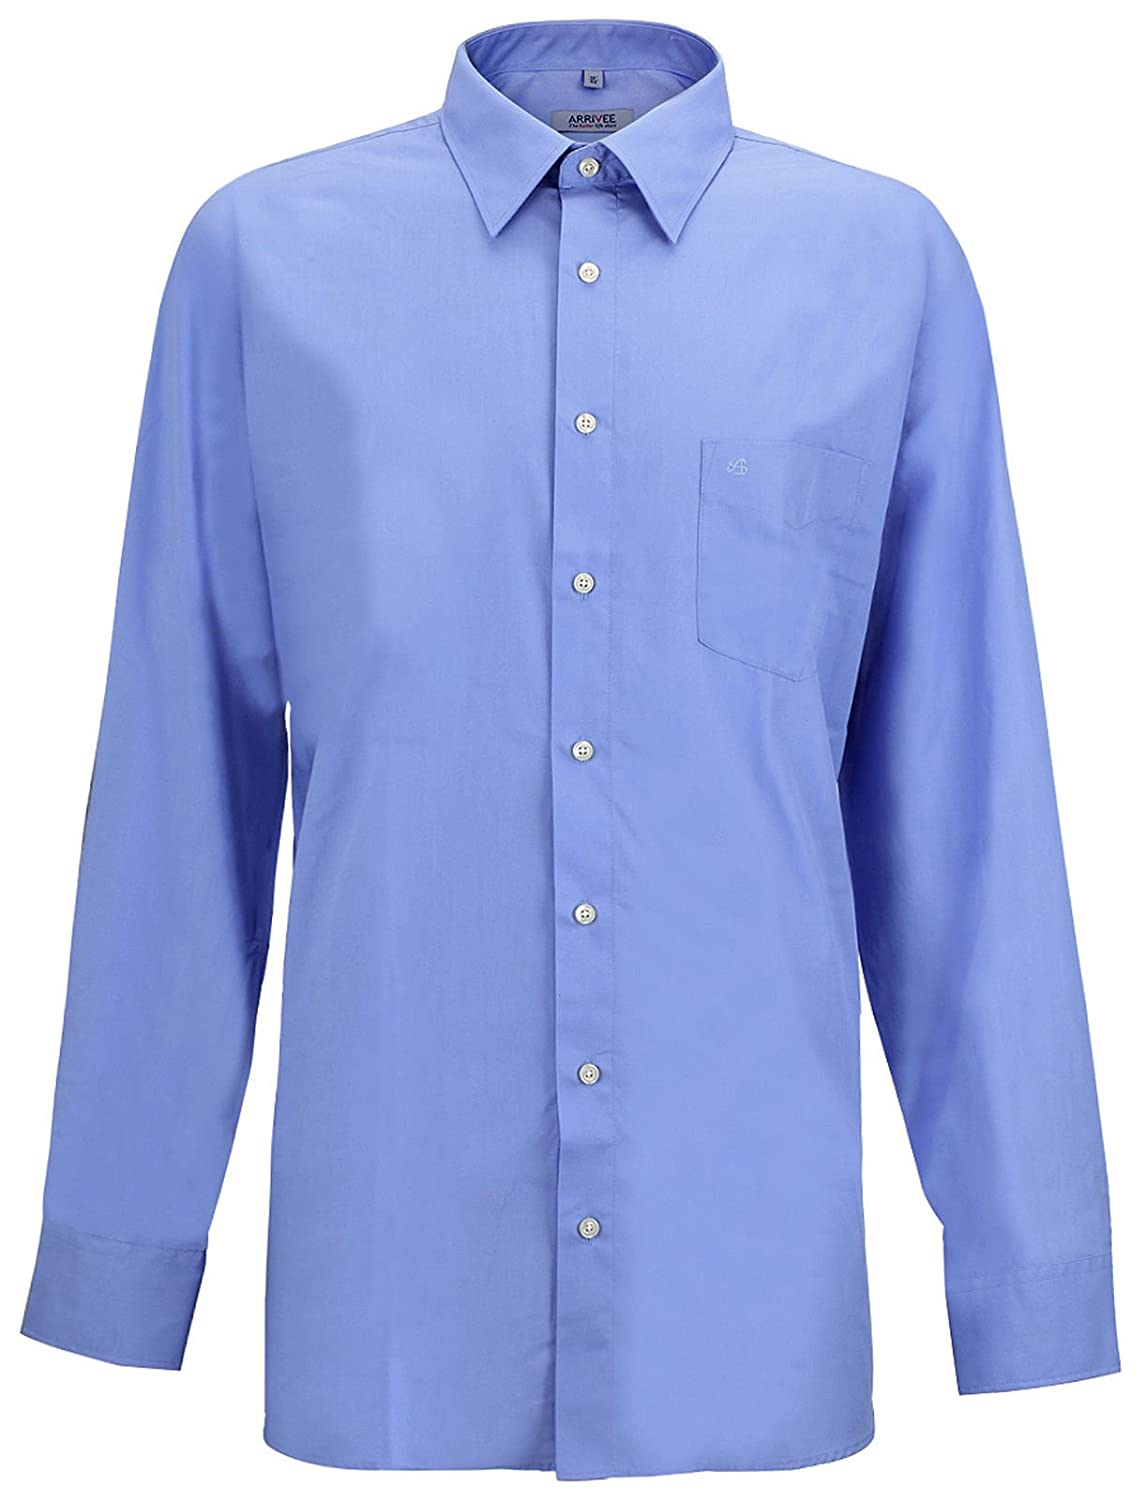 Arrivee Men's Plain Classic Formal Shirt